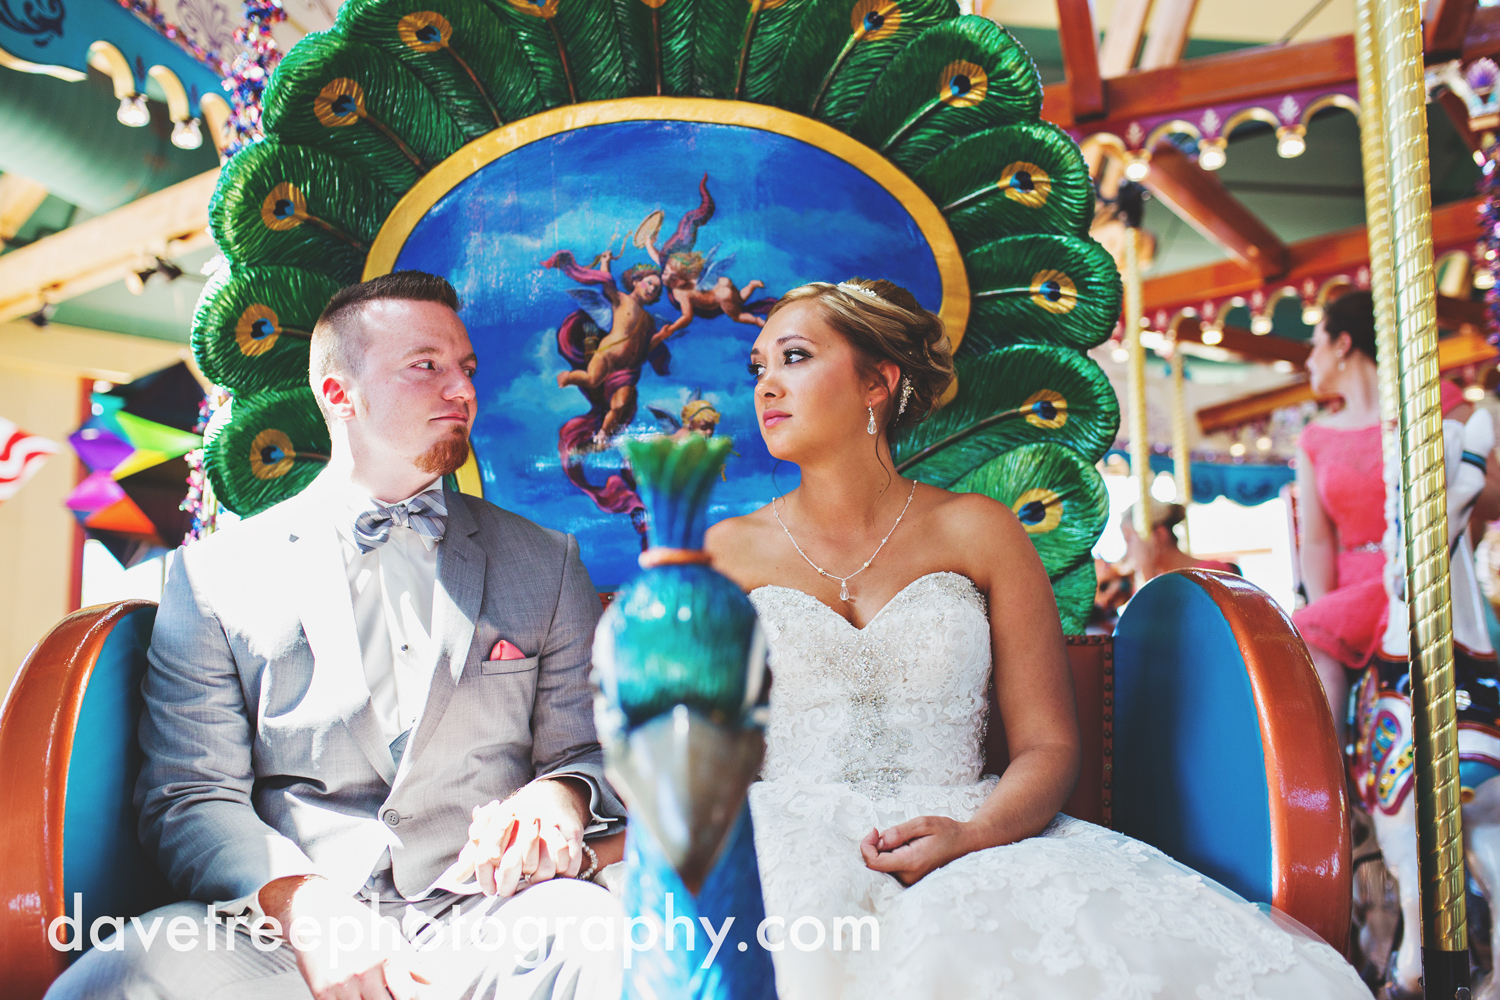 veranda_wedding_photographer_st_joseph_wedding_32.jpg